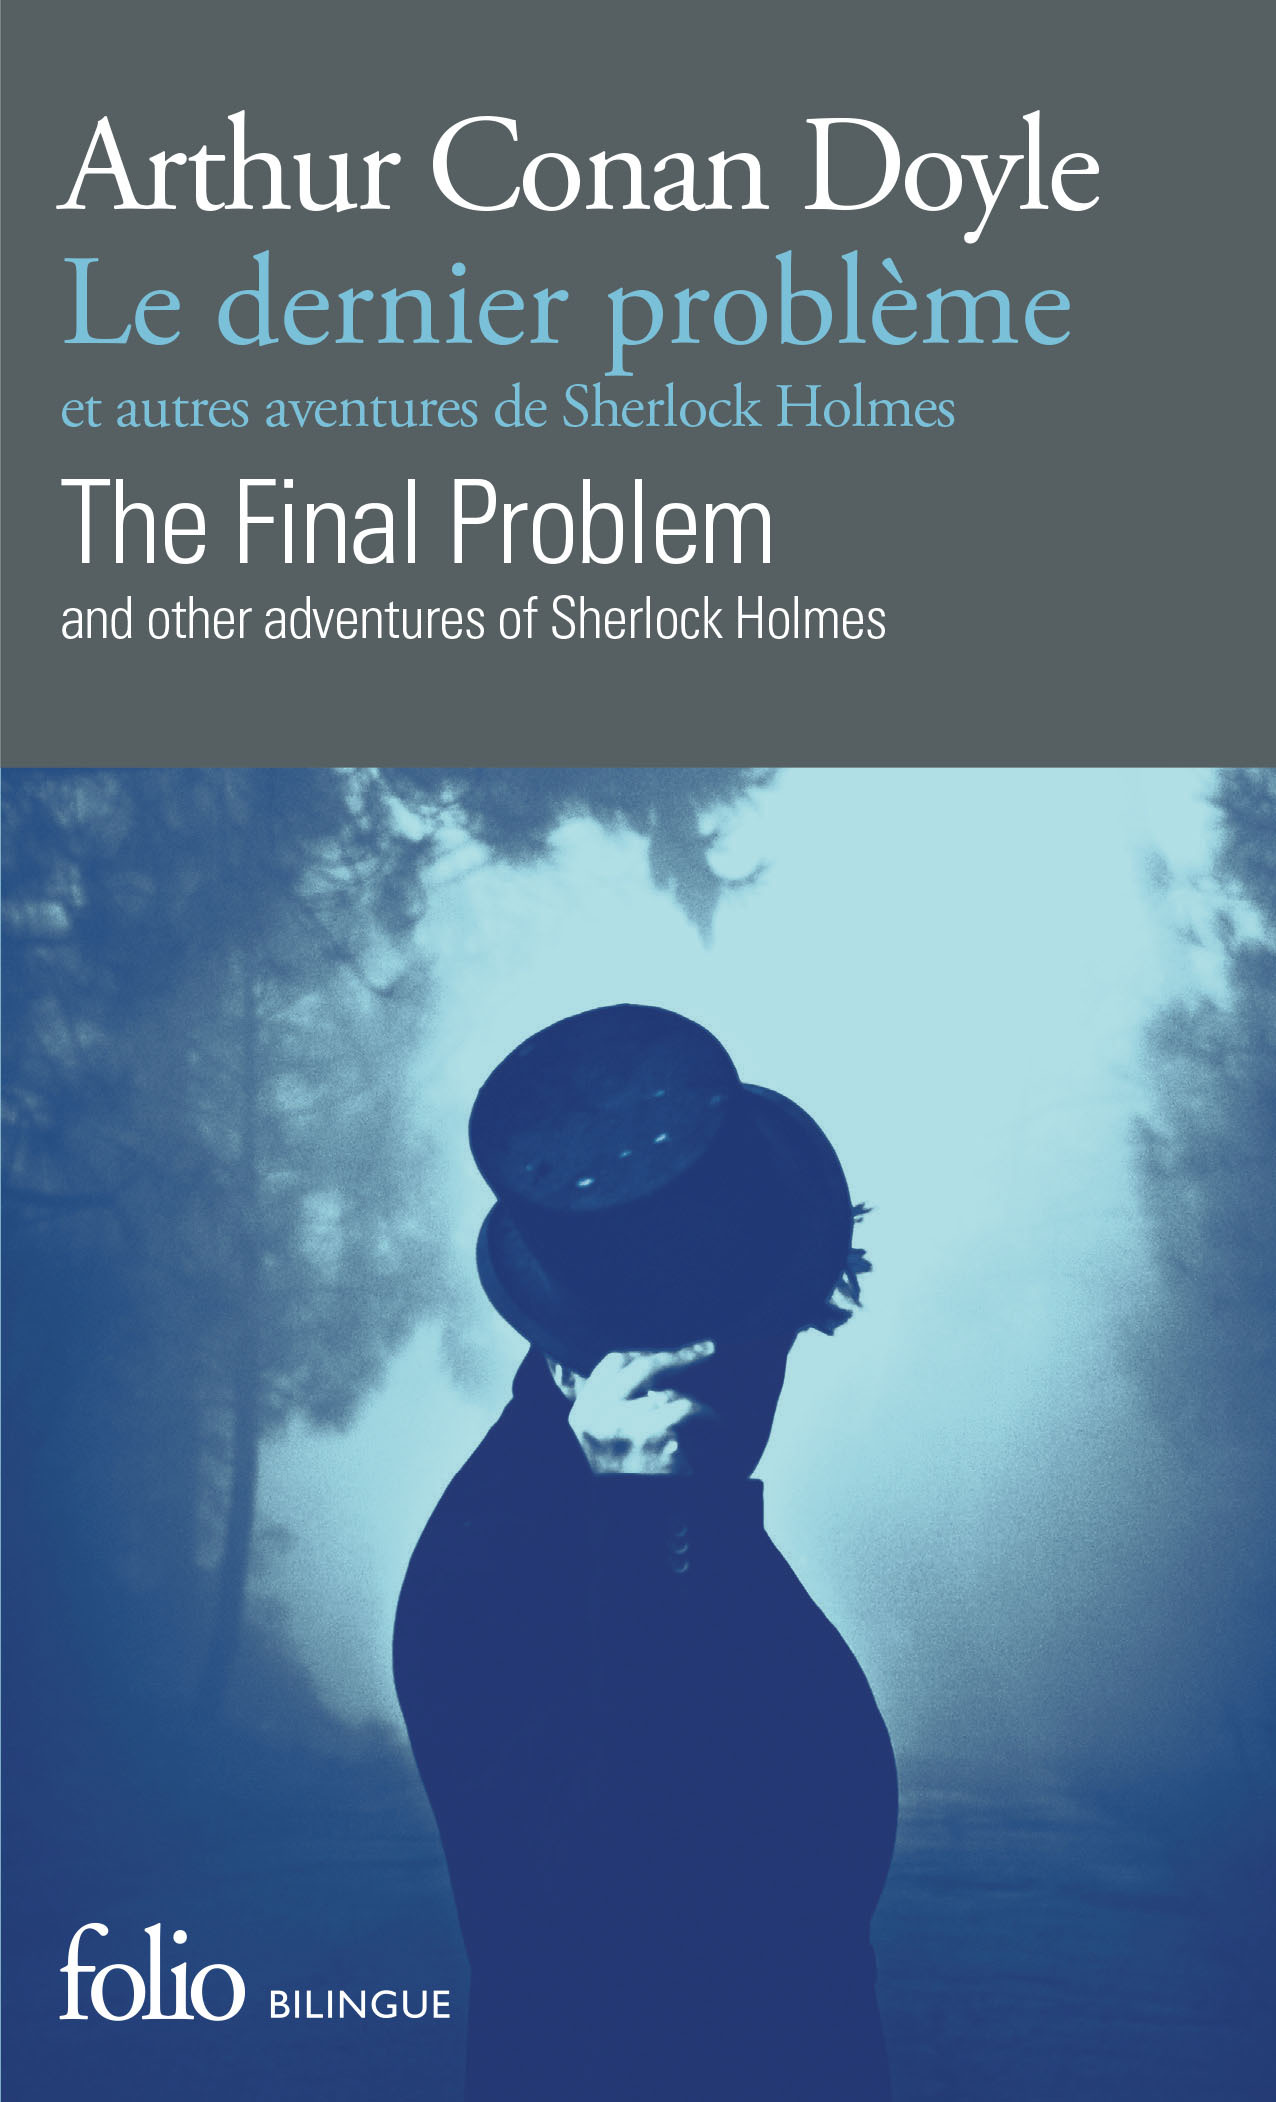 THE FINAL PROBLEM AND OTHER ADVENTURES OF SHERLOCK HOLMES